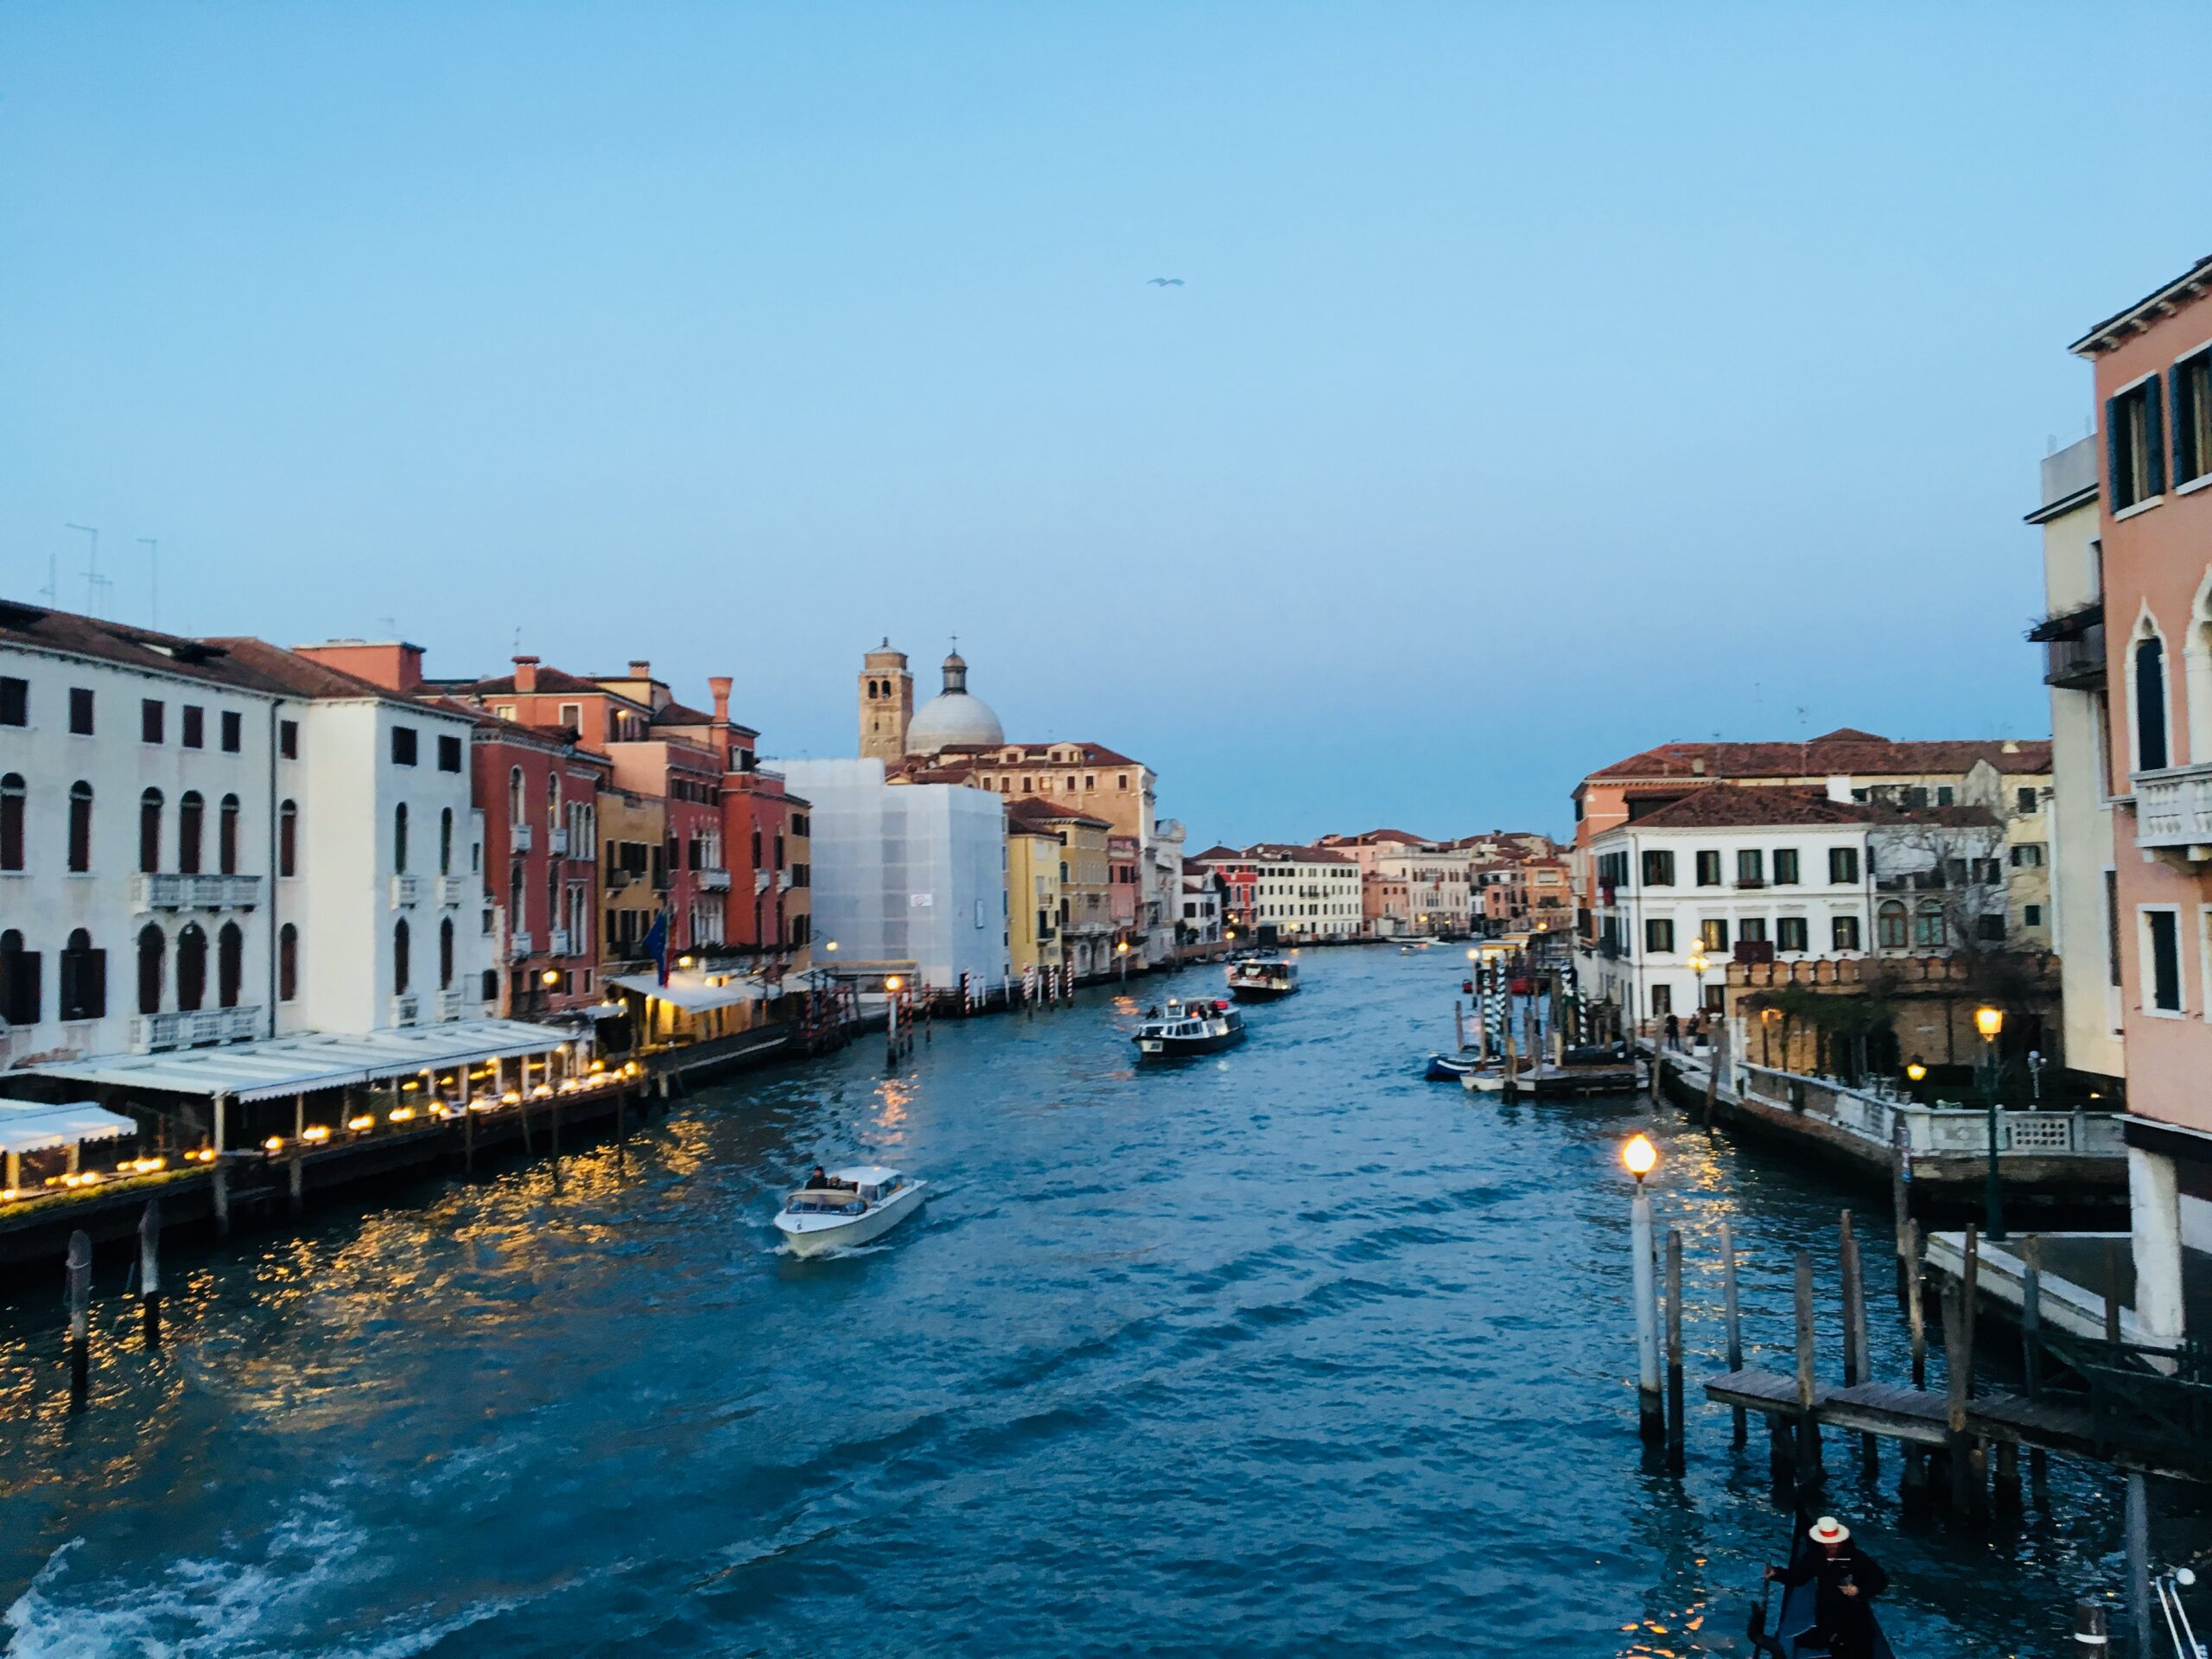 🇮🇹Italy–the Carnival of Venice became official in the Renaissance.文藝復興後成一年一度的威尼斯面具節